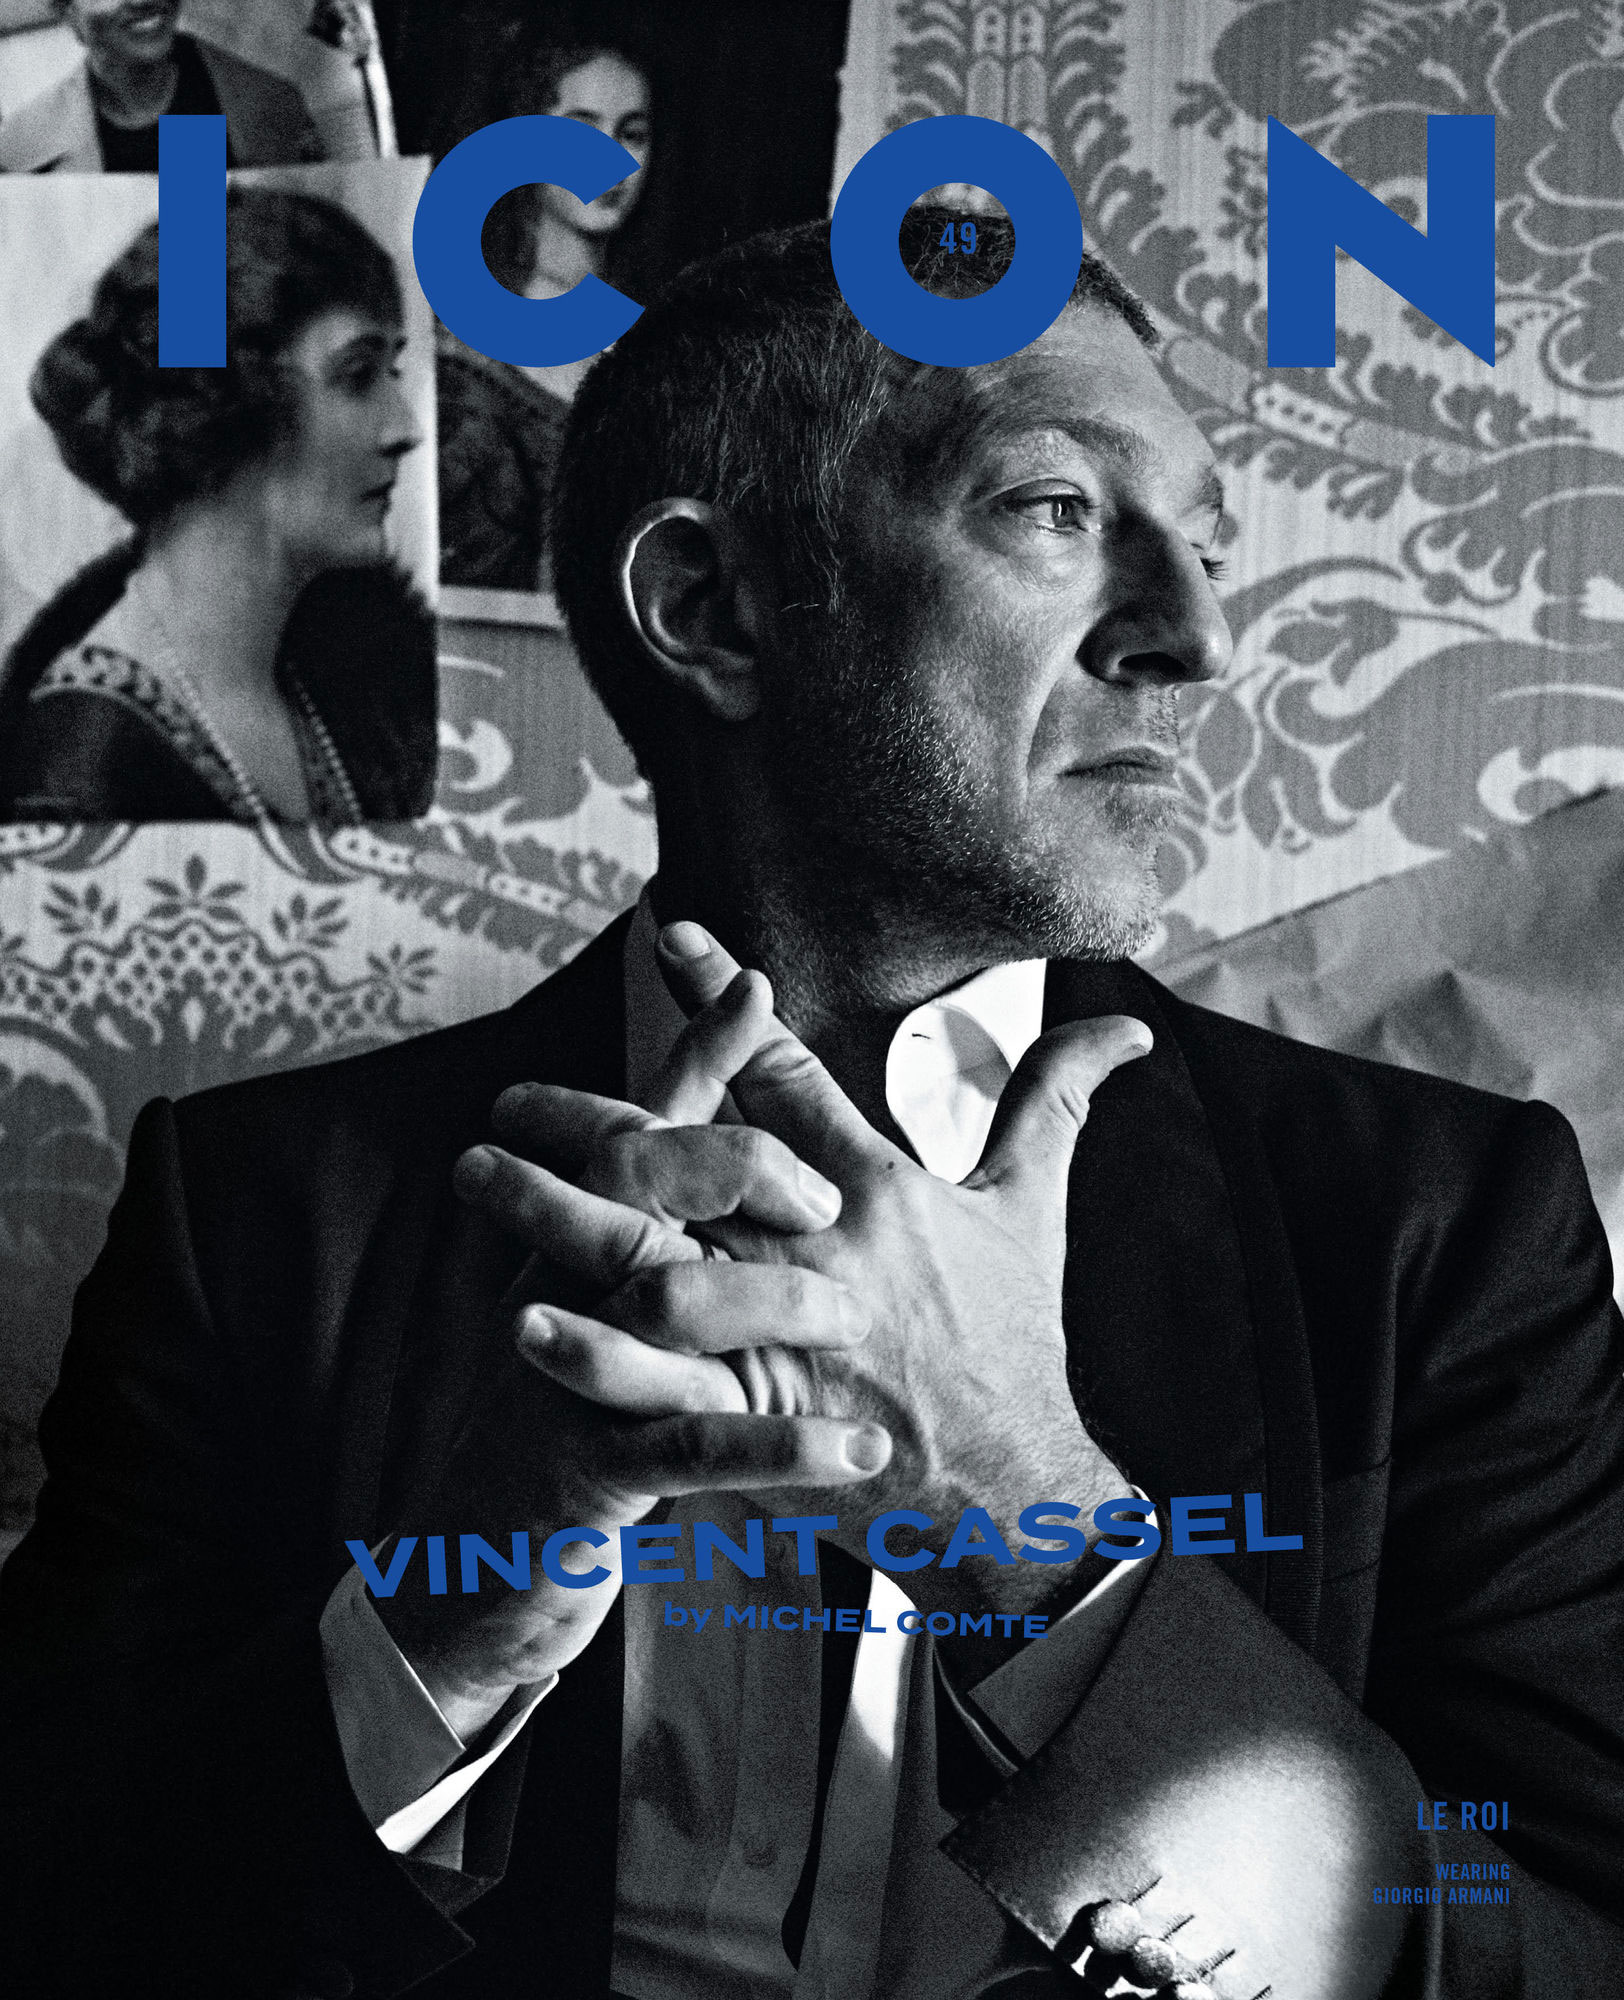 Icon Magazine x Vincent Cassel 2019 | Michel Comte | Icon | Ilario Vilnius | Numerique Retouch Photo Retouching Studio